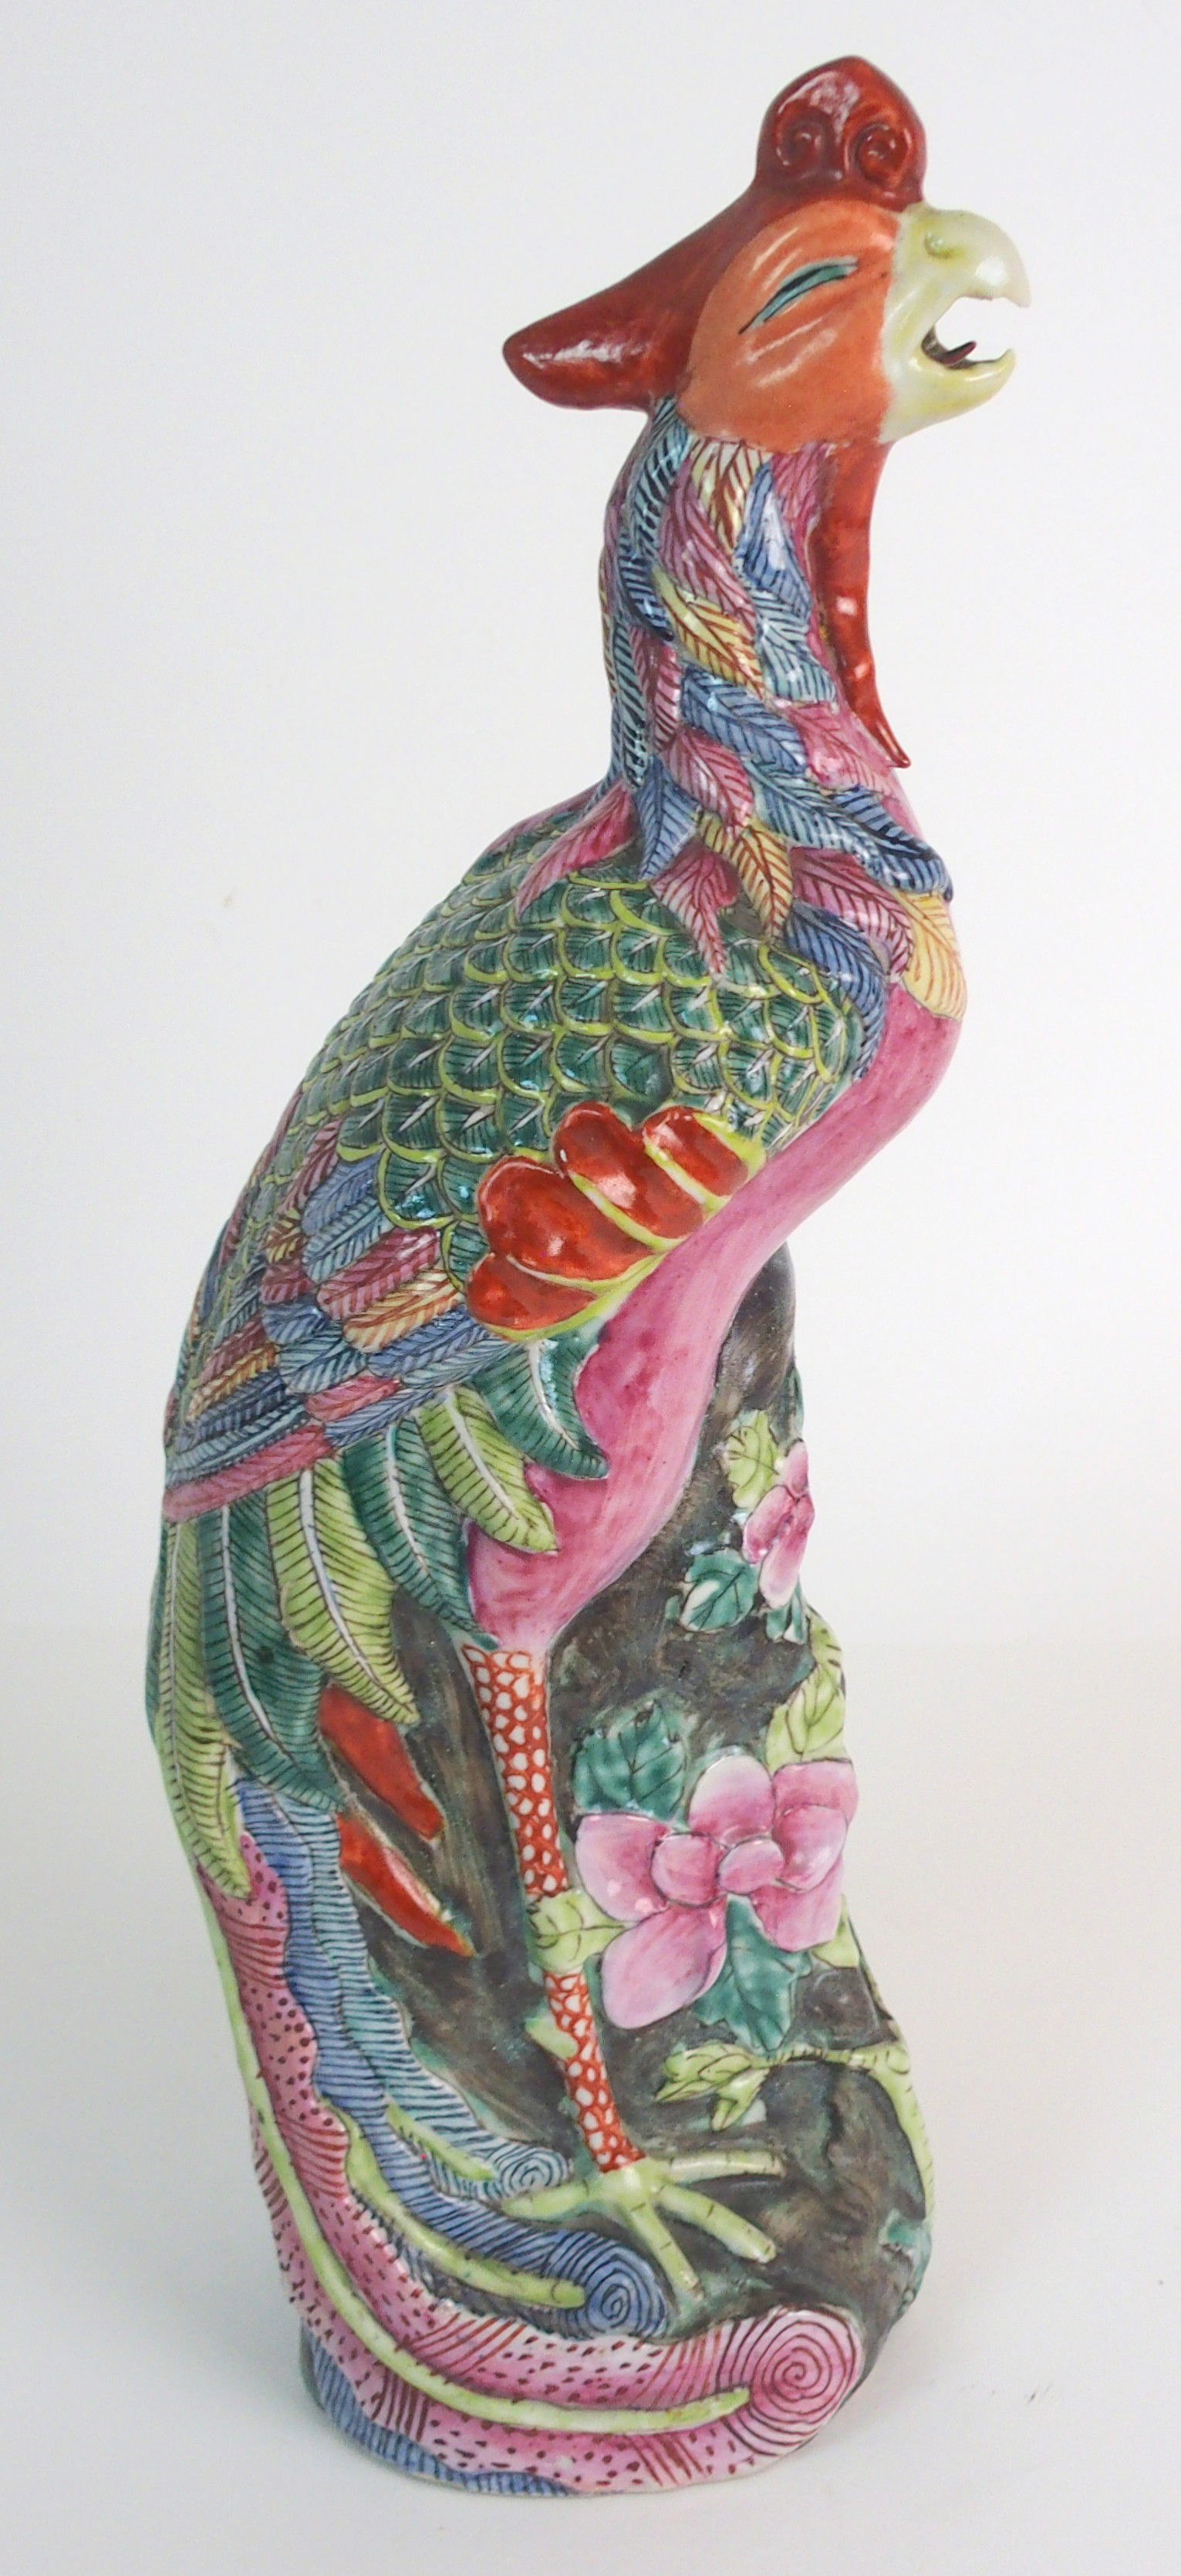 Lot 59 - A CHINESE FAMILLE ROSE MODEL OF A PEACOCK brightly coloured and standing on pierced rockwork, 36.5cm